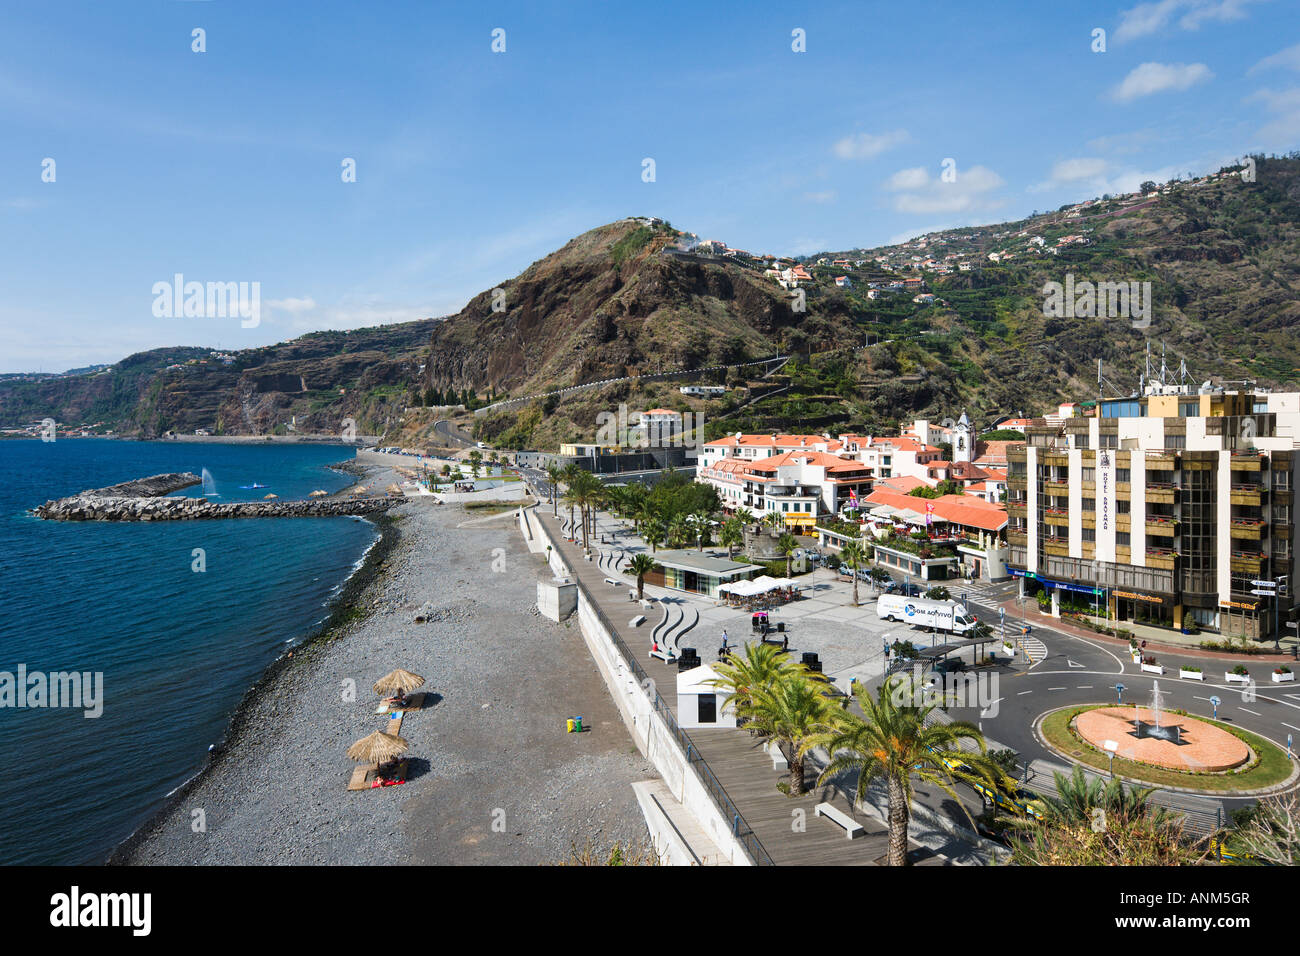 Town Beach and Seafront, Ribeira Brava, South Coast, Madeira, Portugal - Stock Image